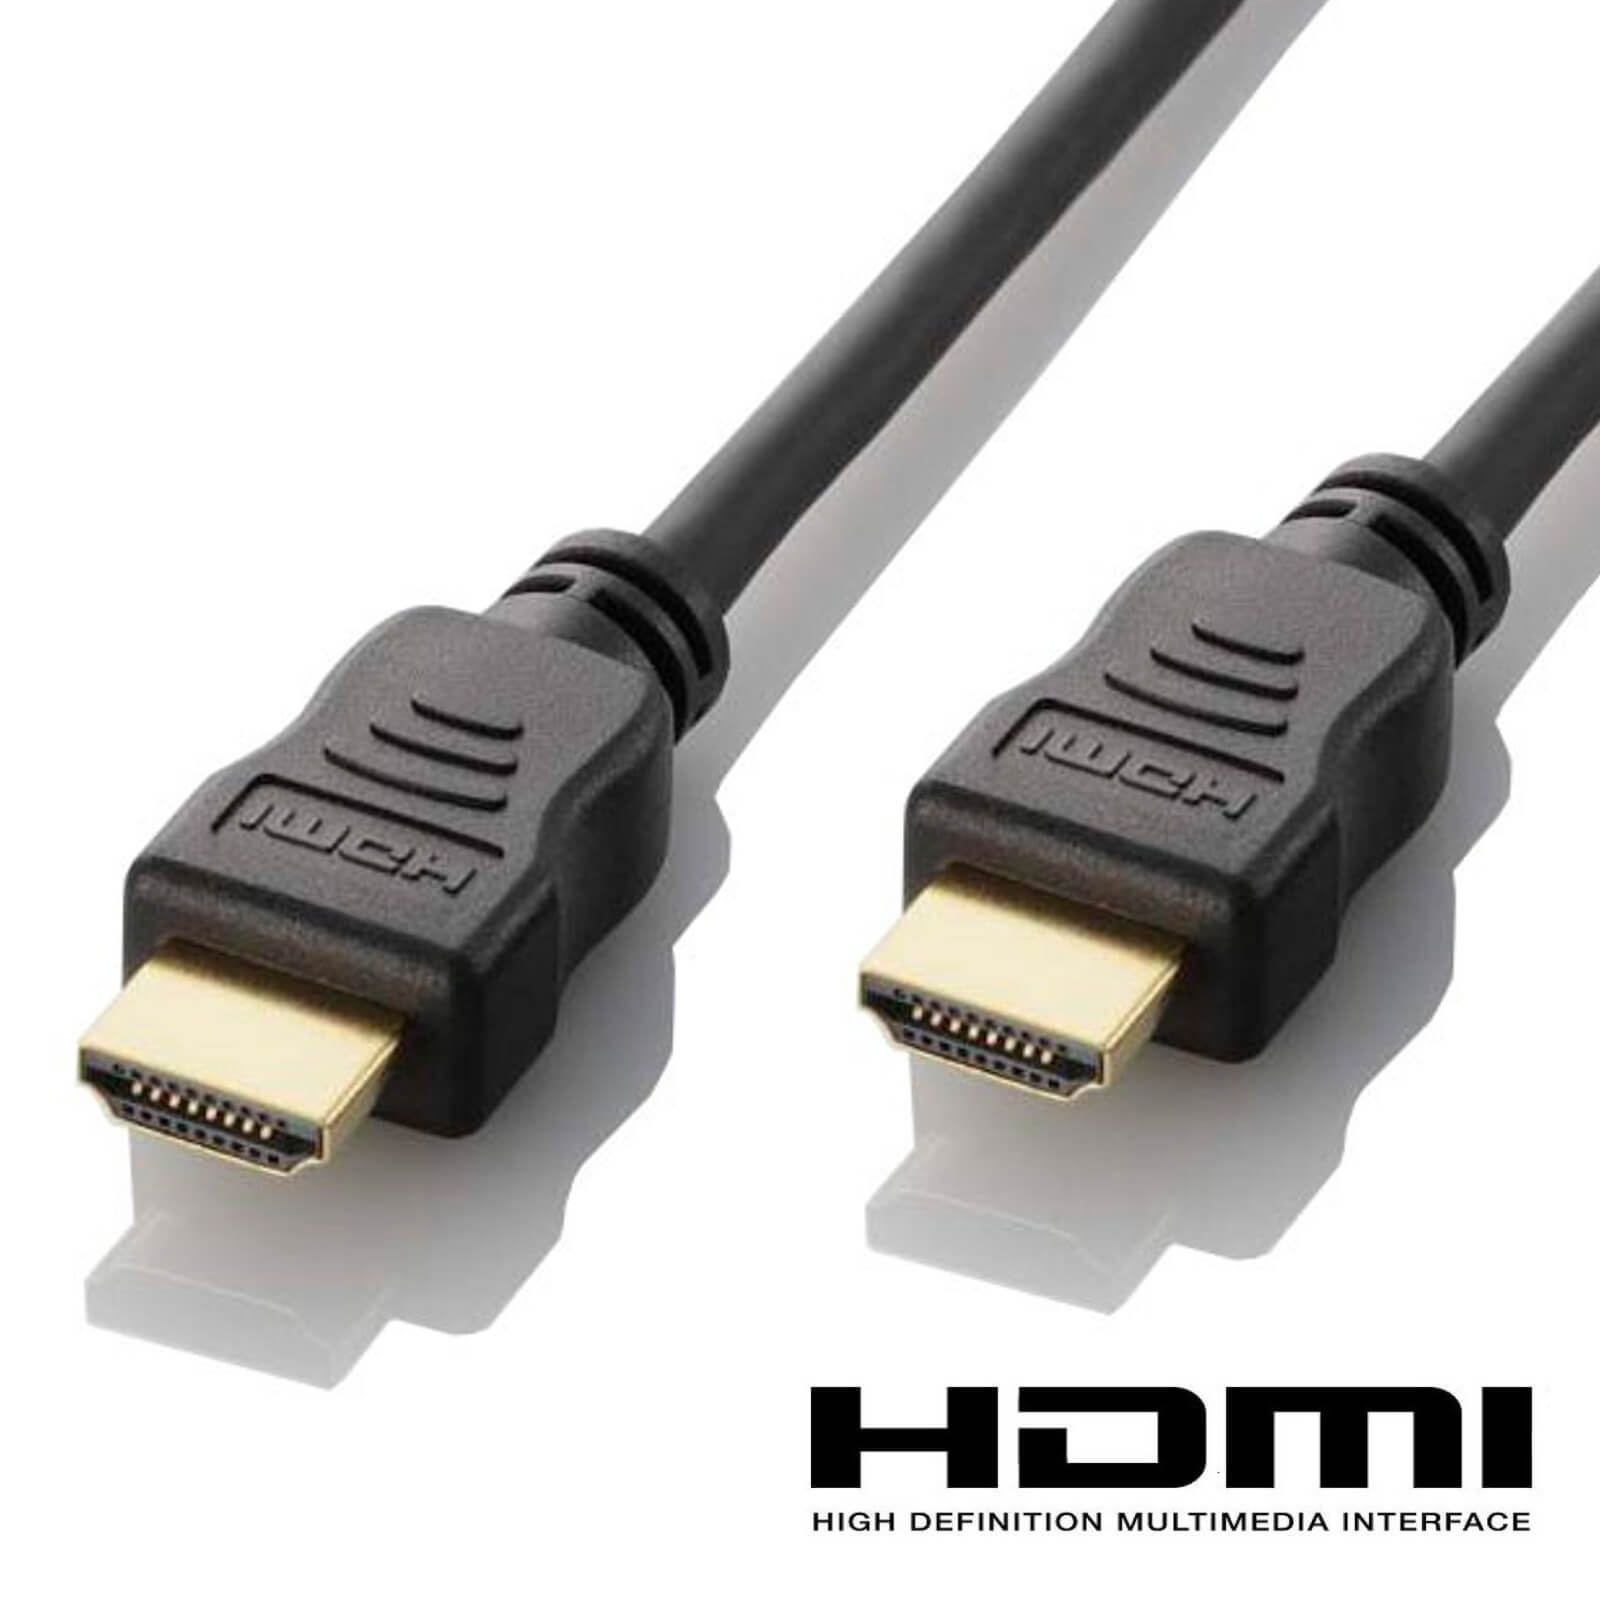 Awm Hdmi Wire Diagram Electrical Wiring Diagrams Cable For Tv Trusted Connector Pinout